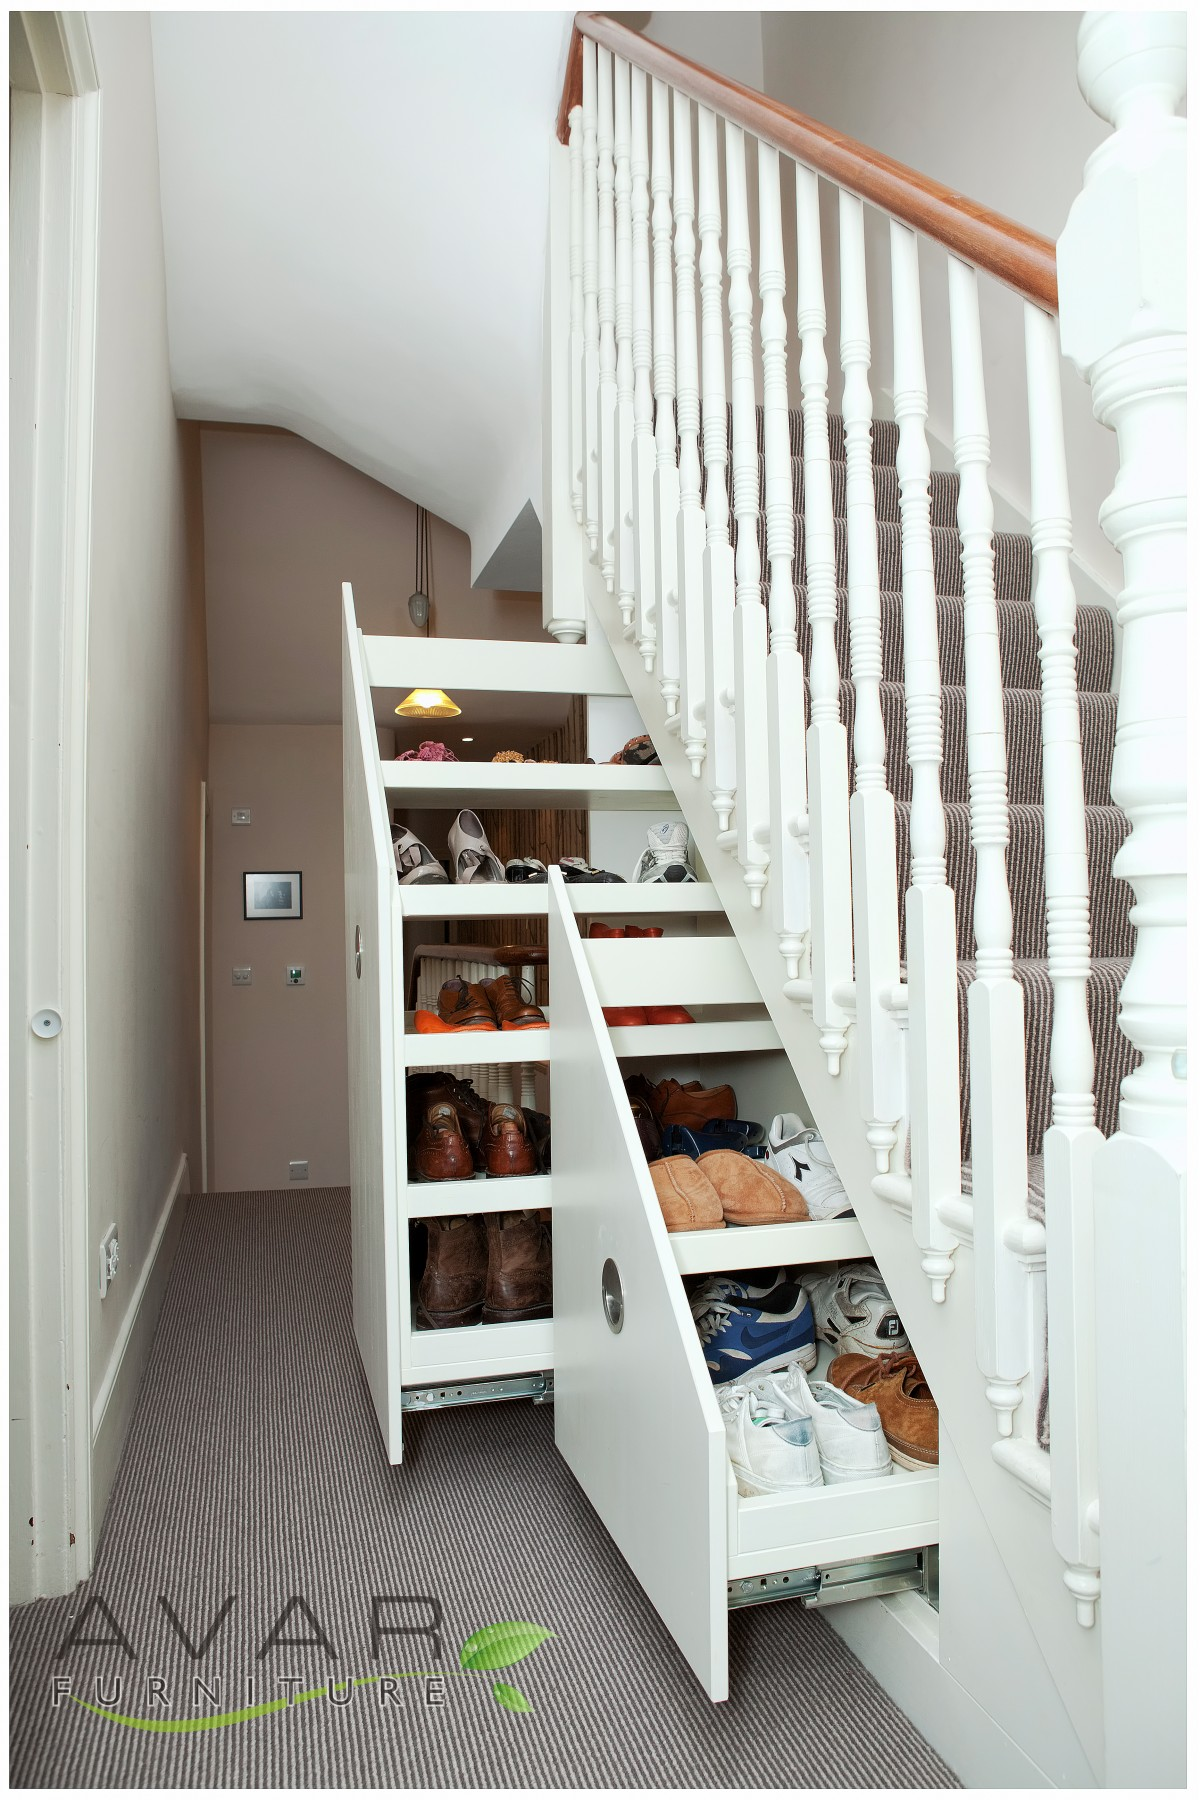 ƸӜƷ Under stairs storage ideas / Gallery 14 | North London, UK ...